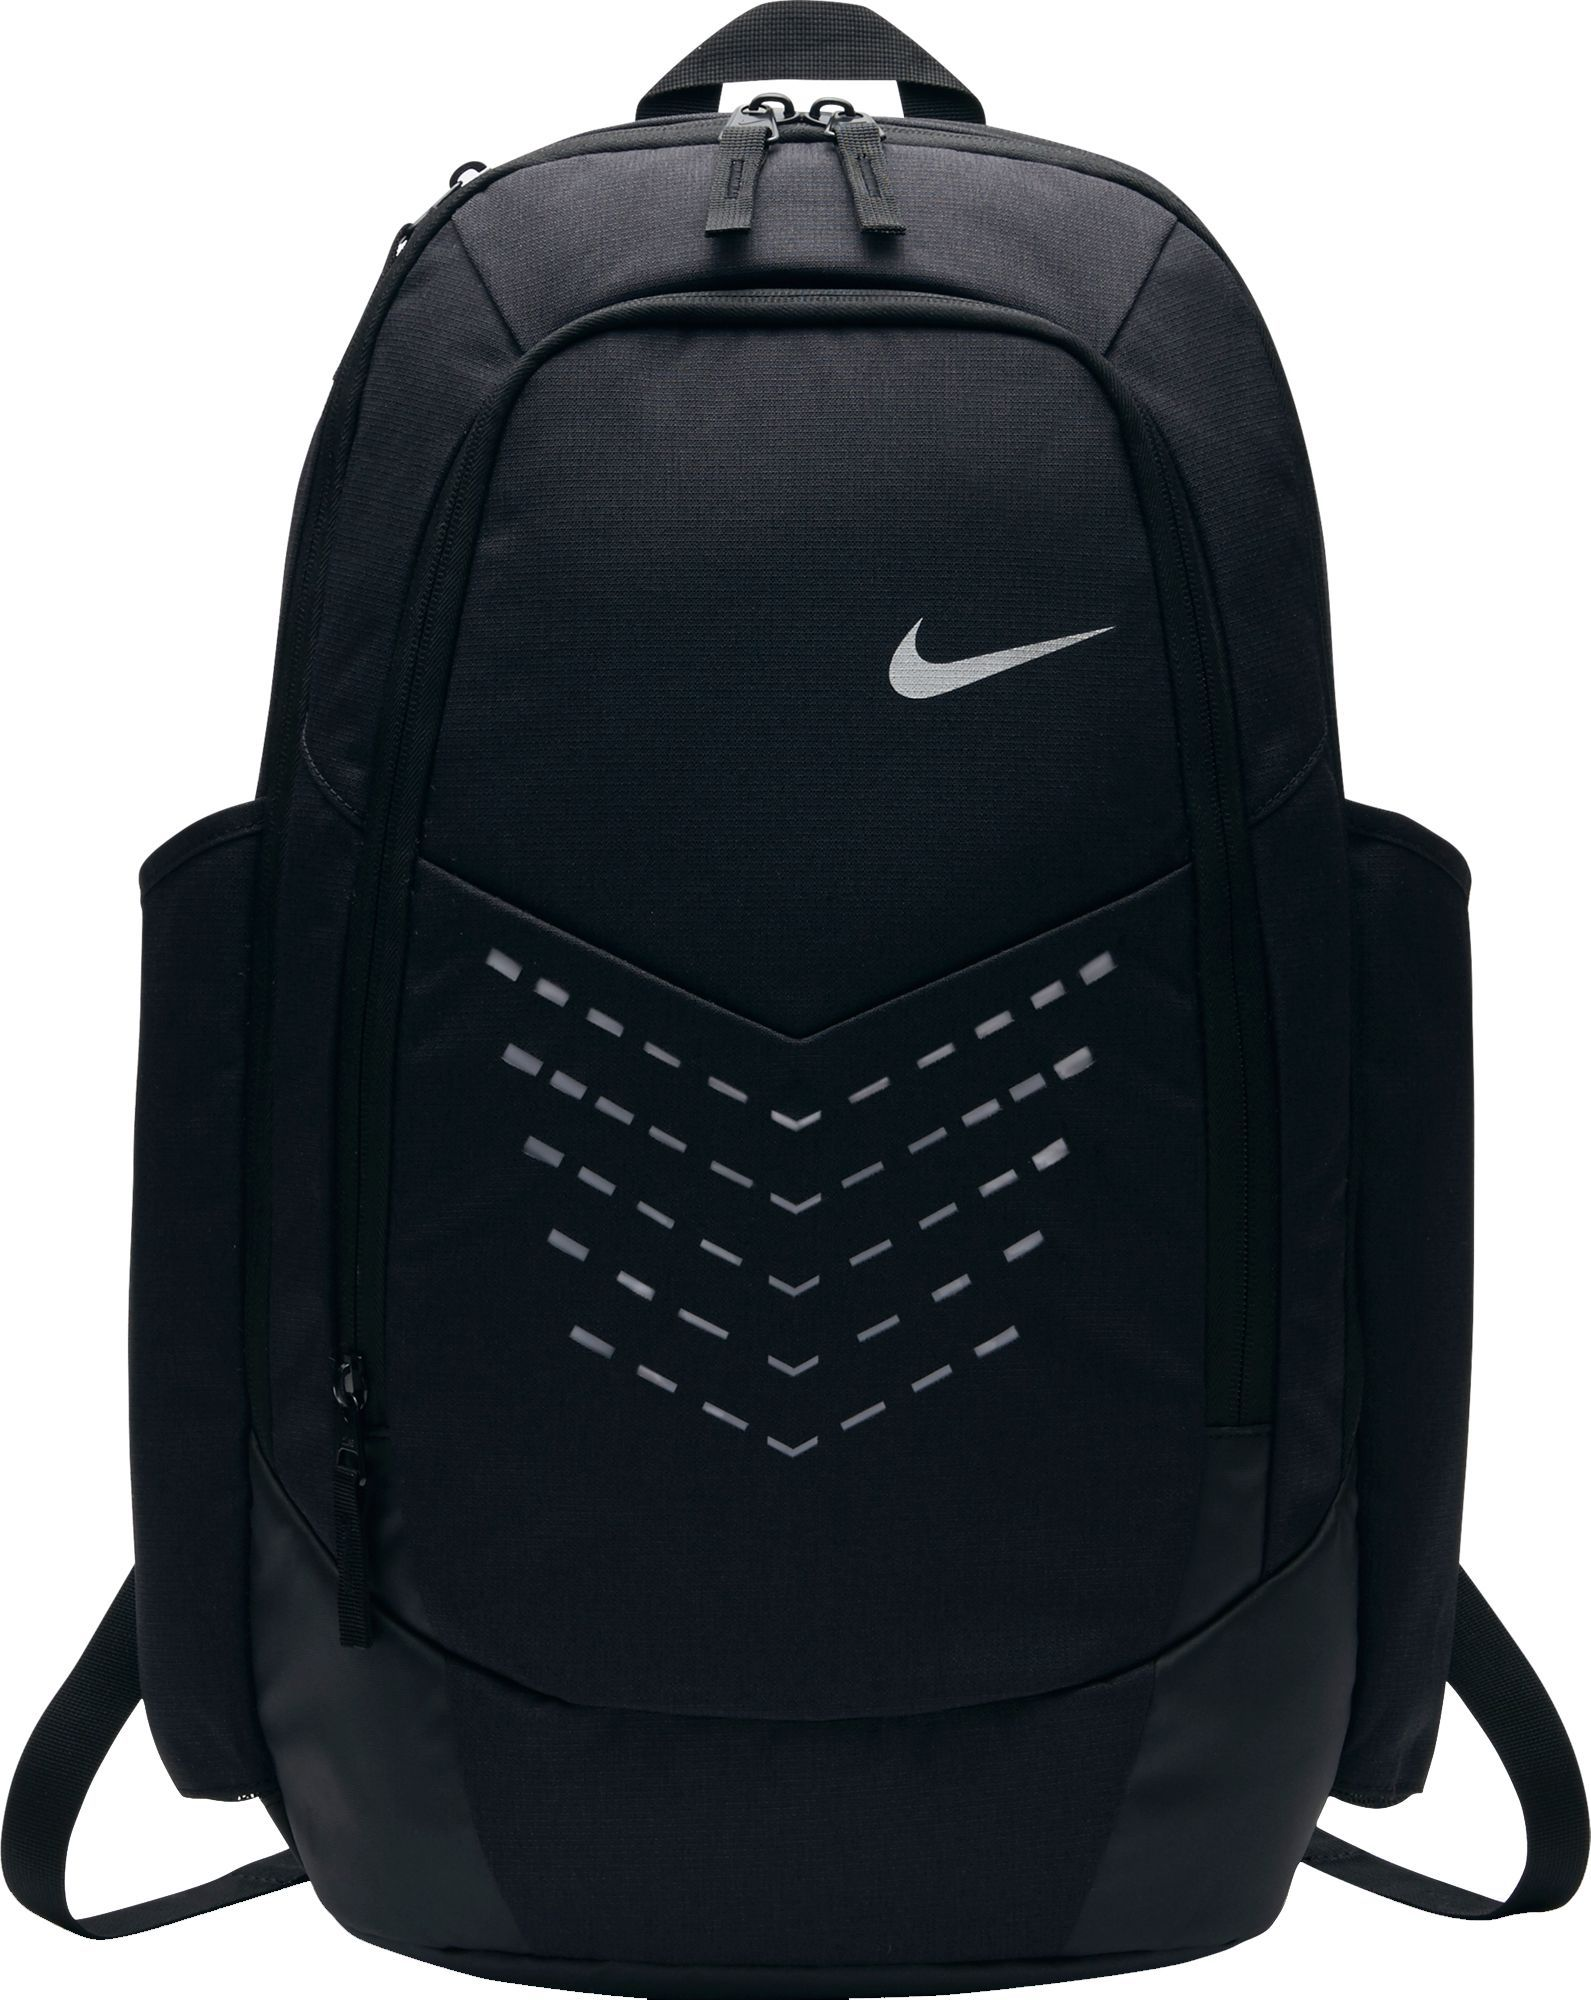 Nike Vapor Energy Training Backpack, Black